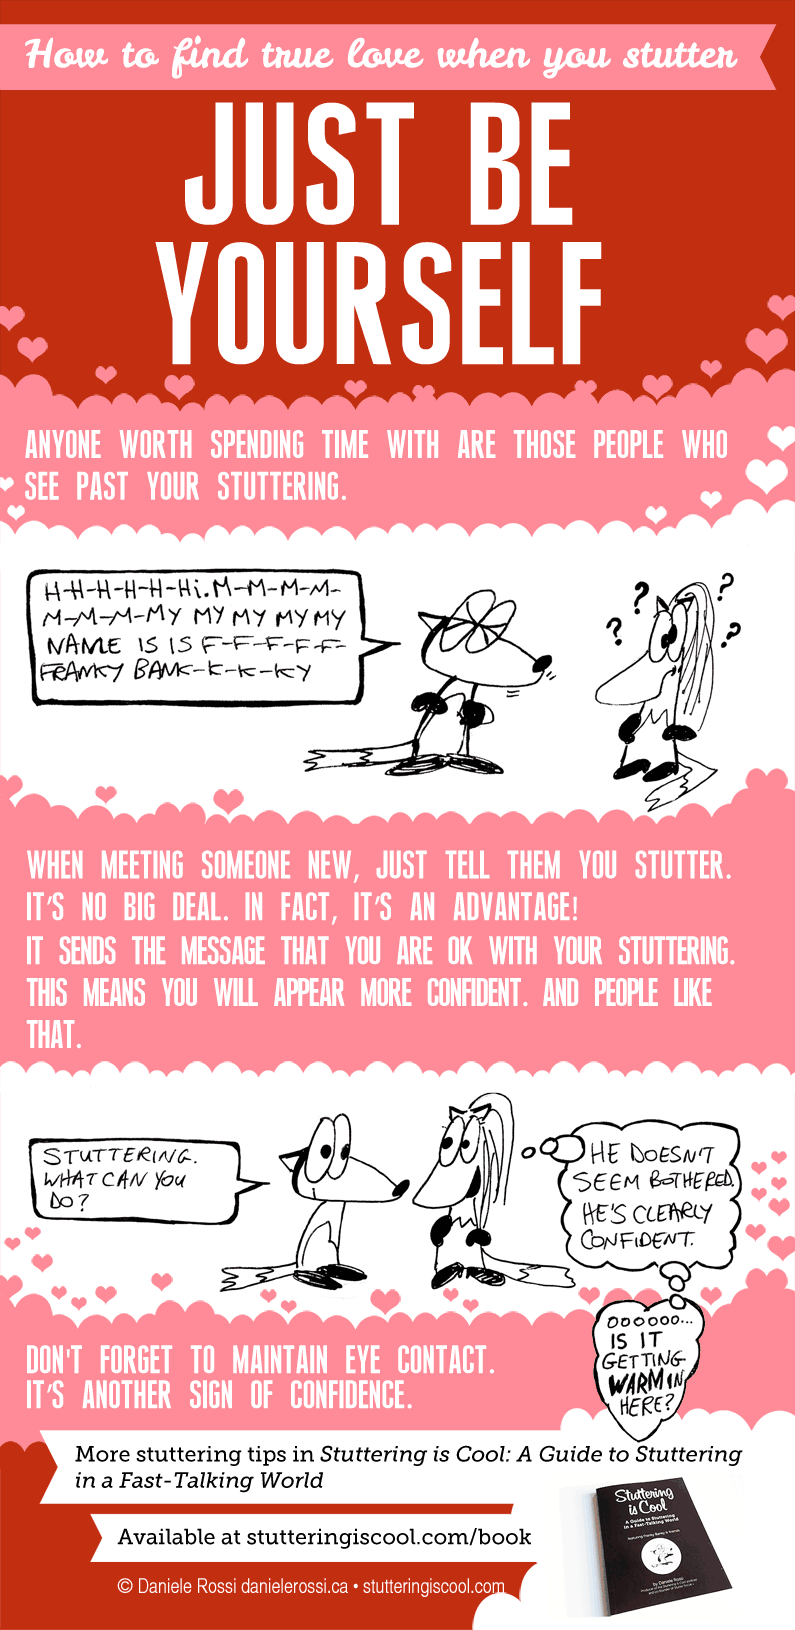 A short comic demonstrating how just being yourself leads you to true love. Don't worry about stuttering.